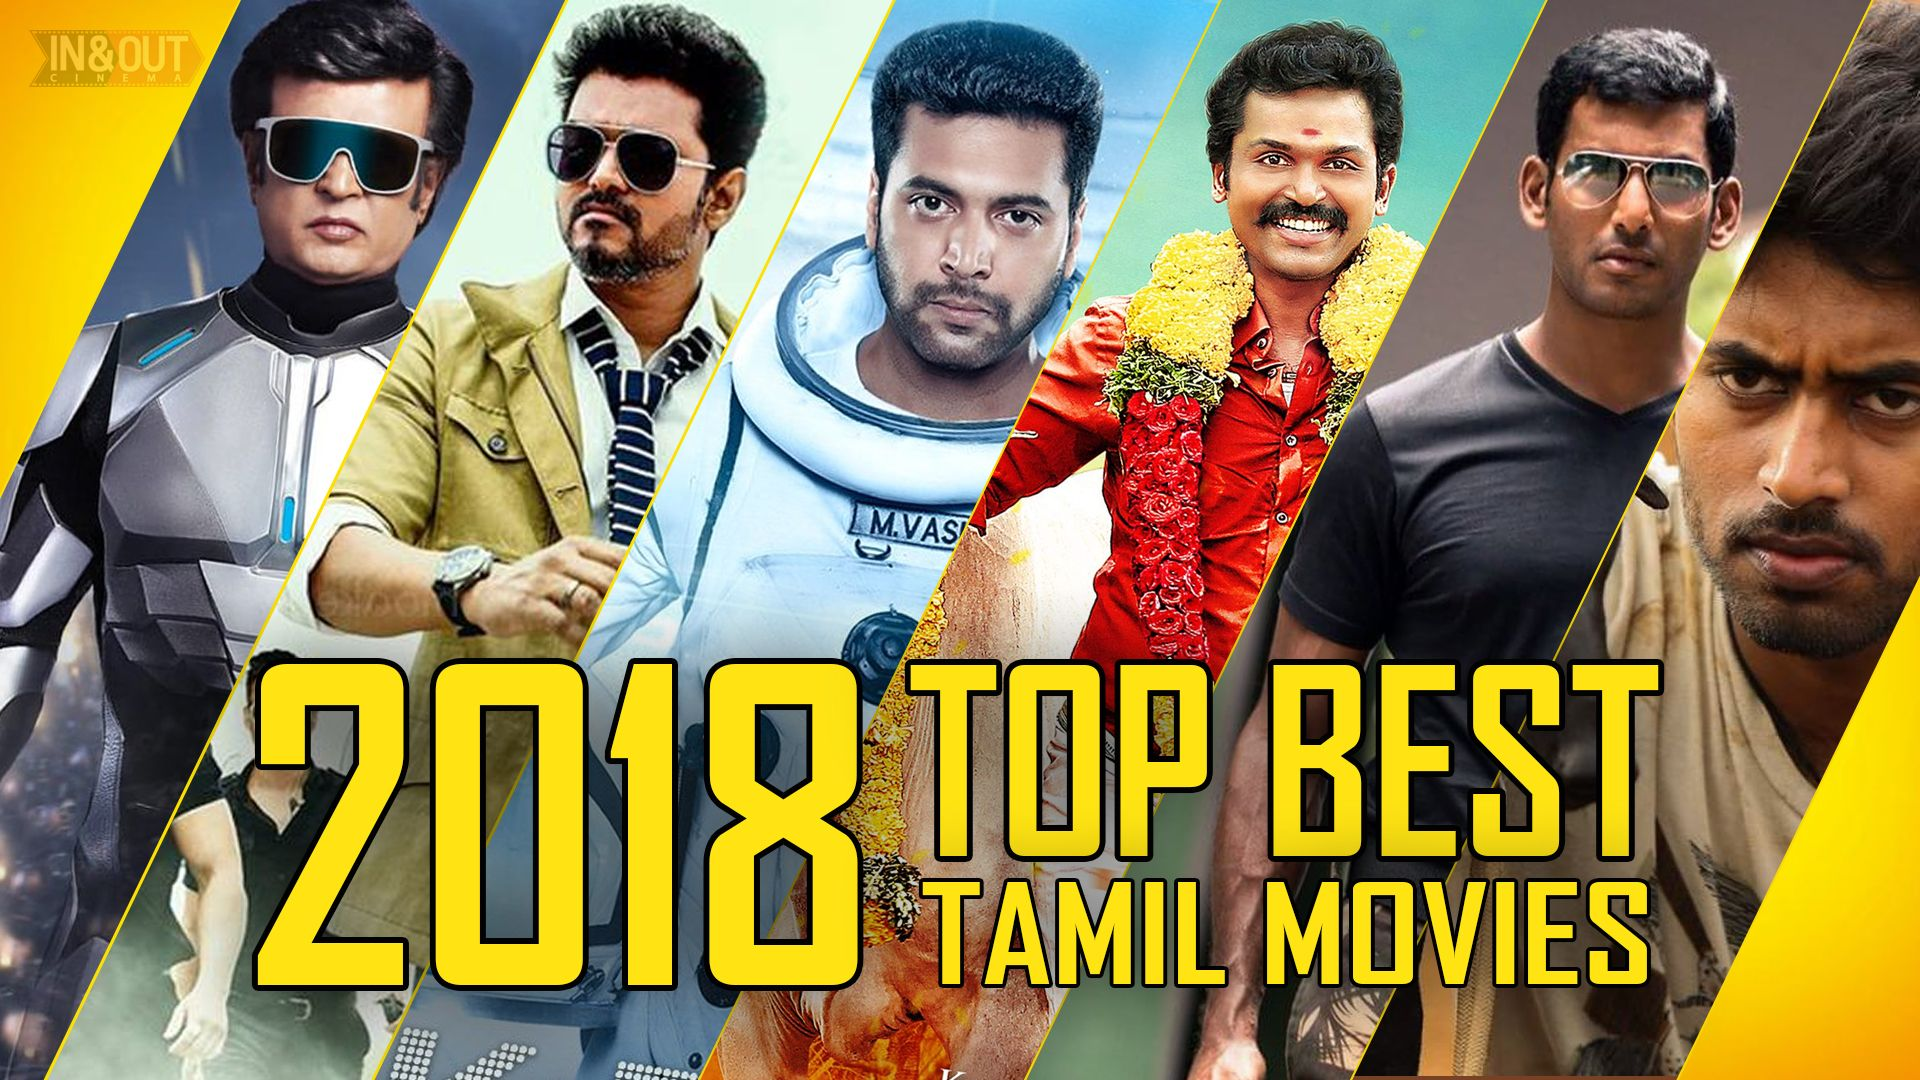 Top Best Tamil Movies 2018 Top Box Office Collection 2018 Updated 2018topmovies Toptenmovies2018 2018topratingmovies Ina Tamil Movies Top Movies Movies